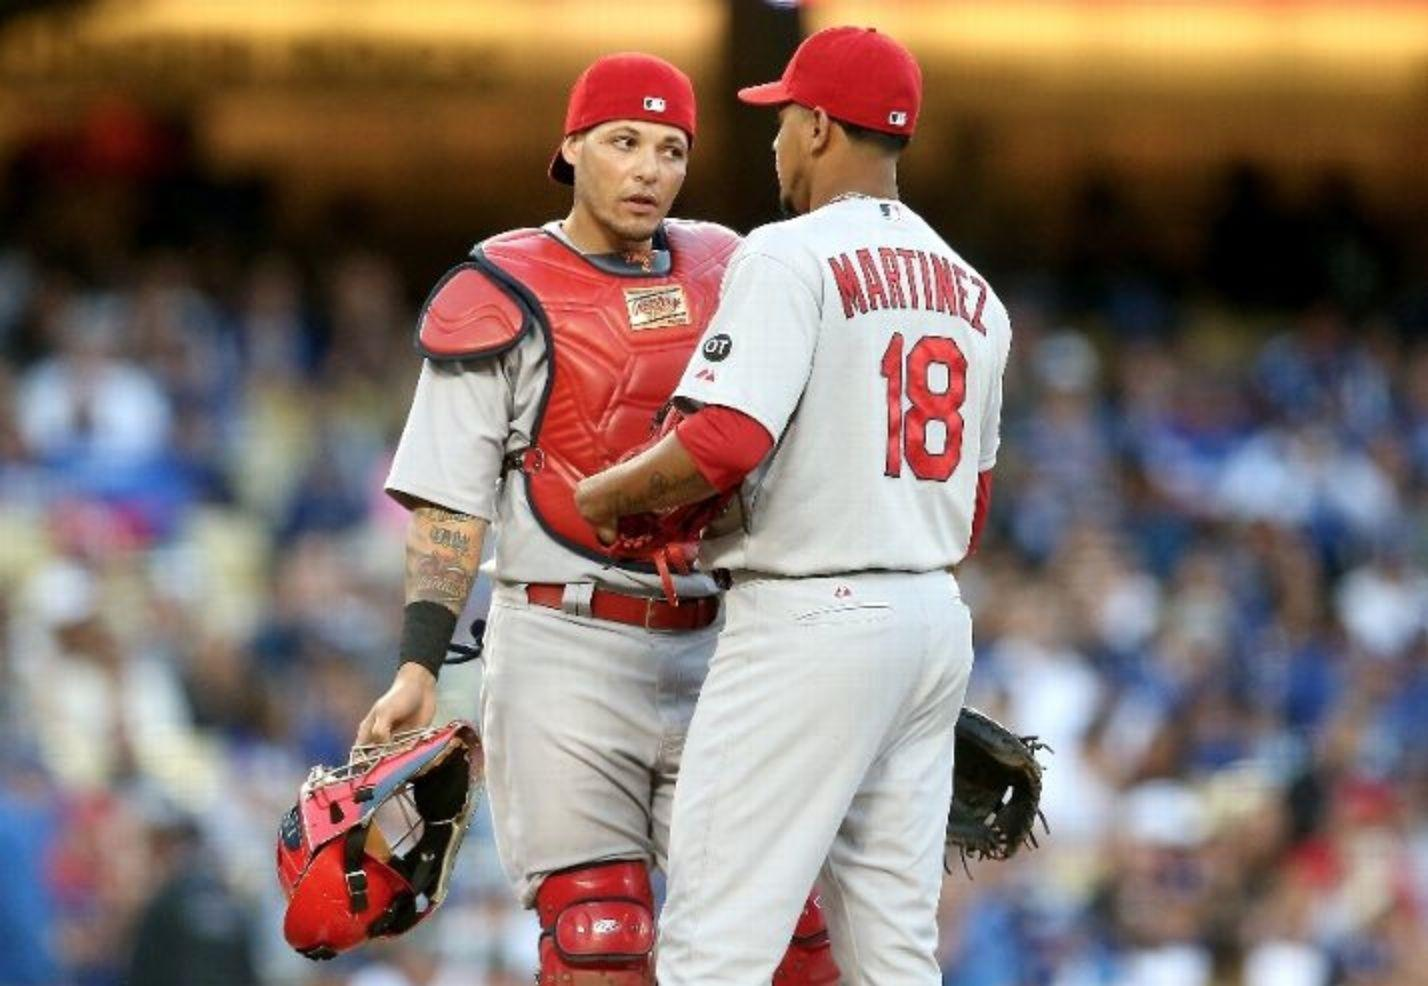 Ehlers on Everything: Yadier Molina and the Art of Catching